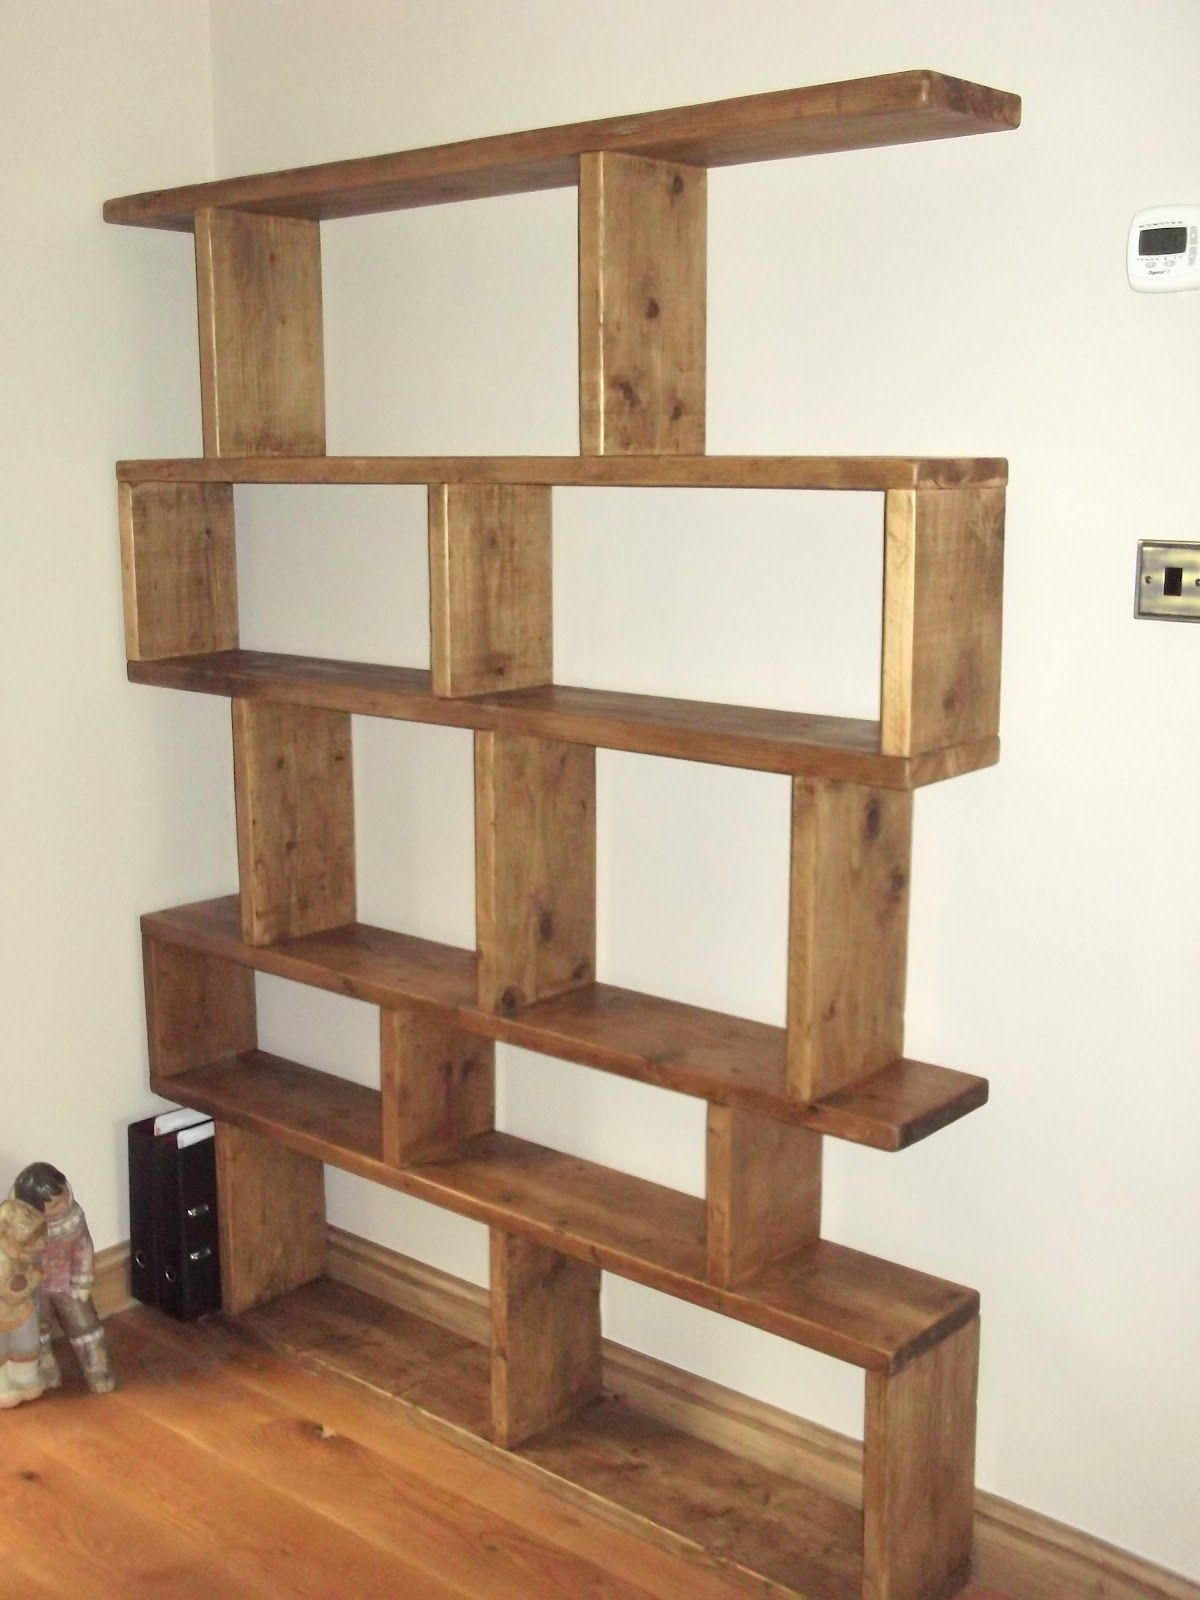 Apartment Storage Ideas Vertical Space More Bookshelves Diy Shelves Standing Bookshelf